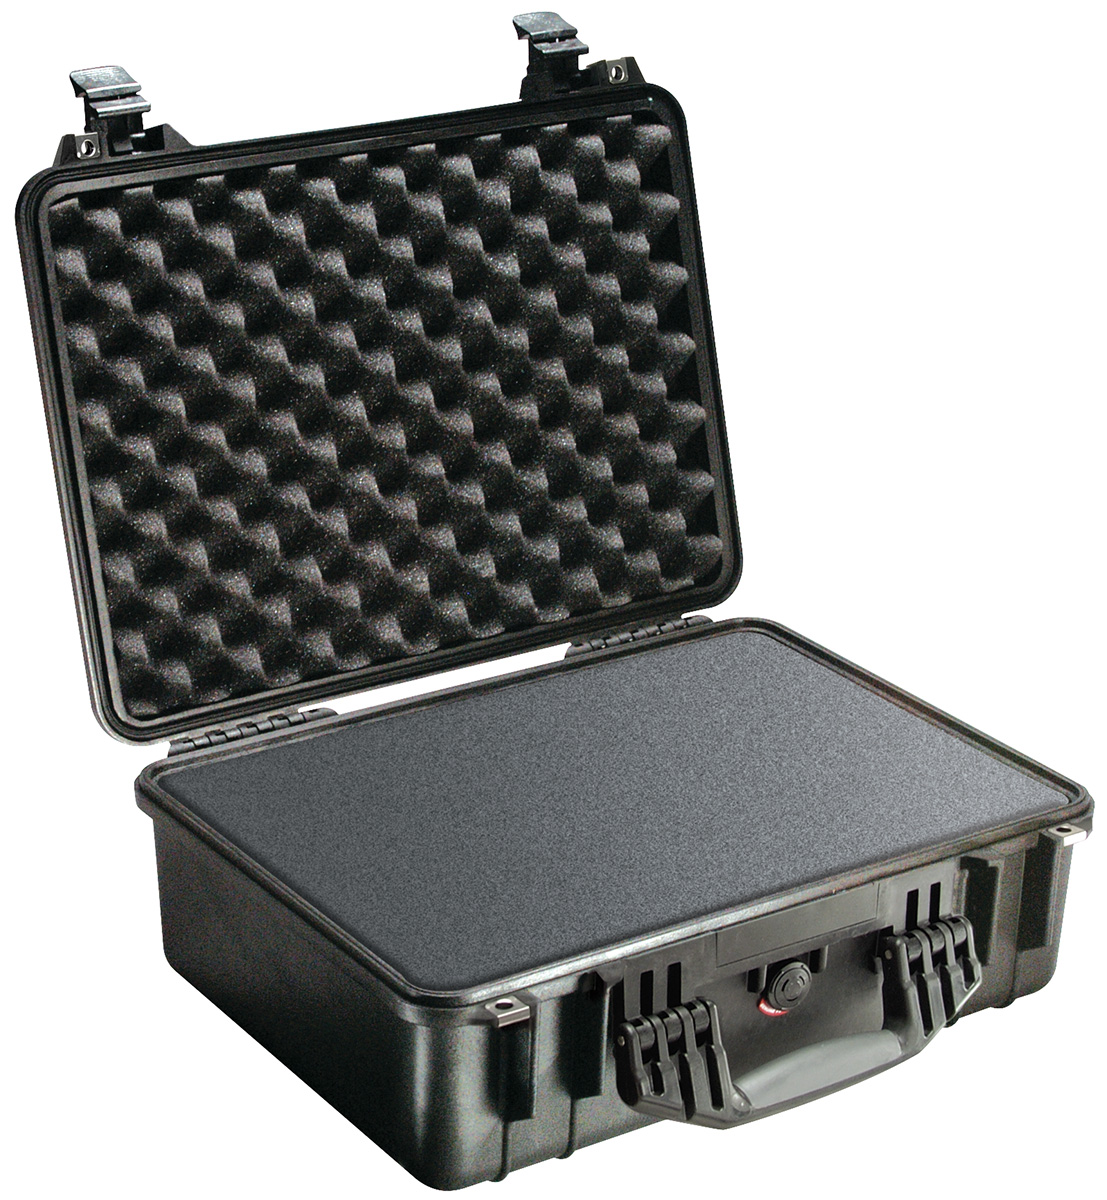 pelican peli products 1520 strongest hard watertight case